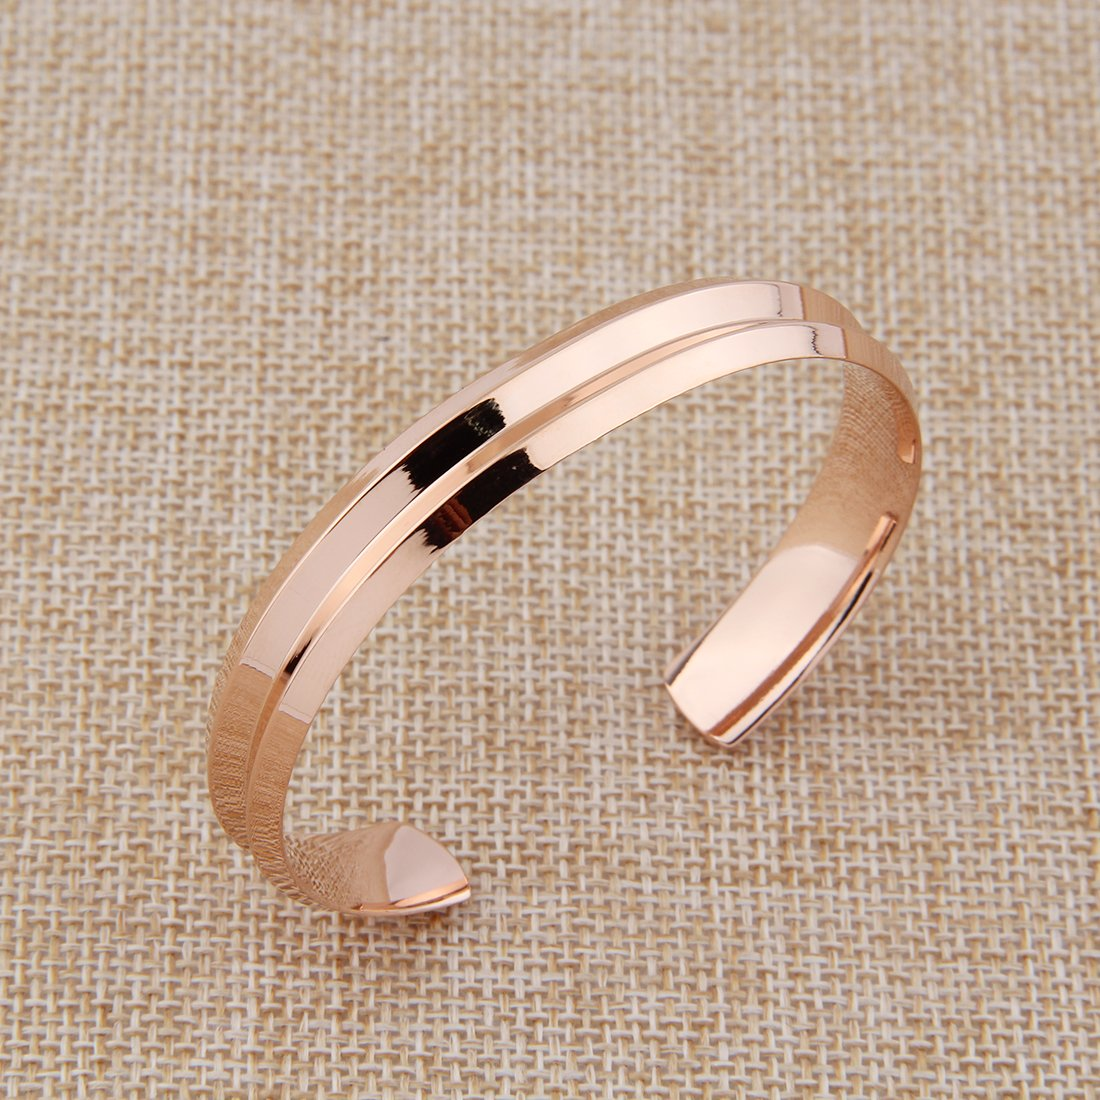 ZUOBAO Stainless Steel Hair Tie Hand Stamped V Groove Cuff Bangle